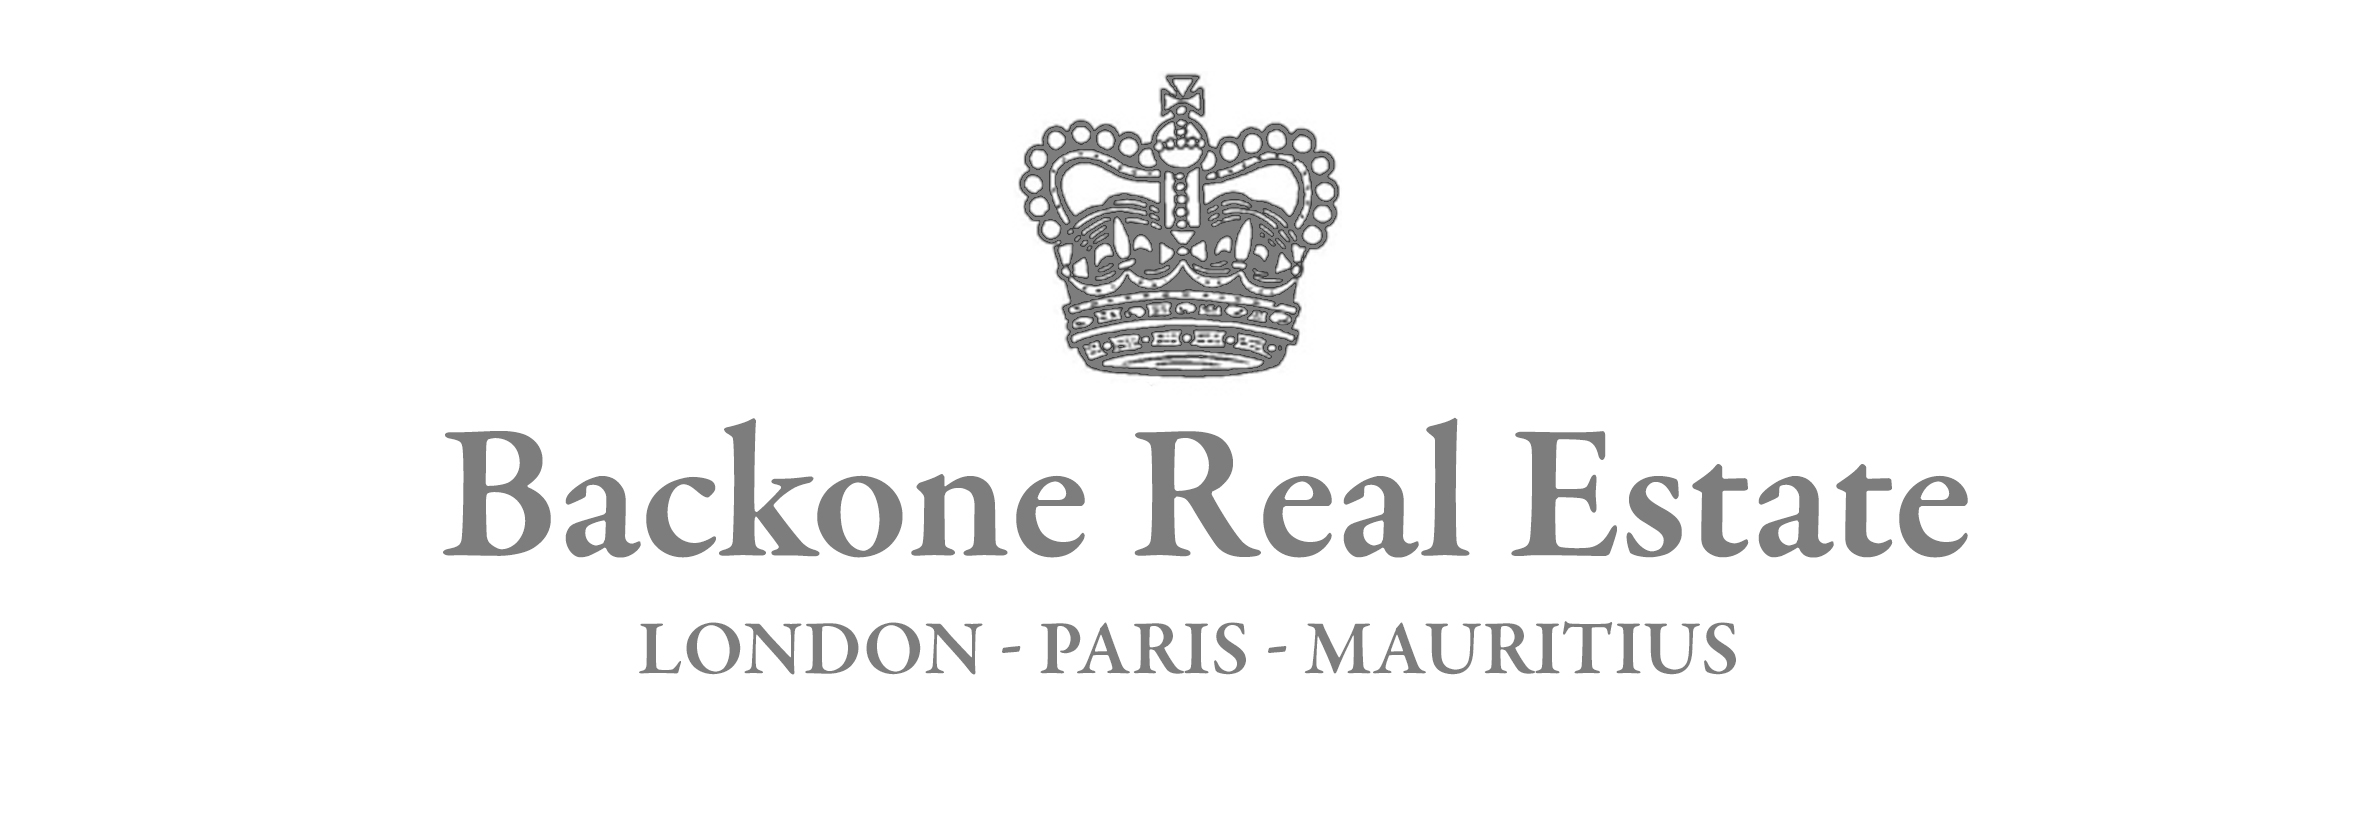 Backone Real Estate